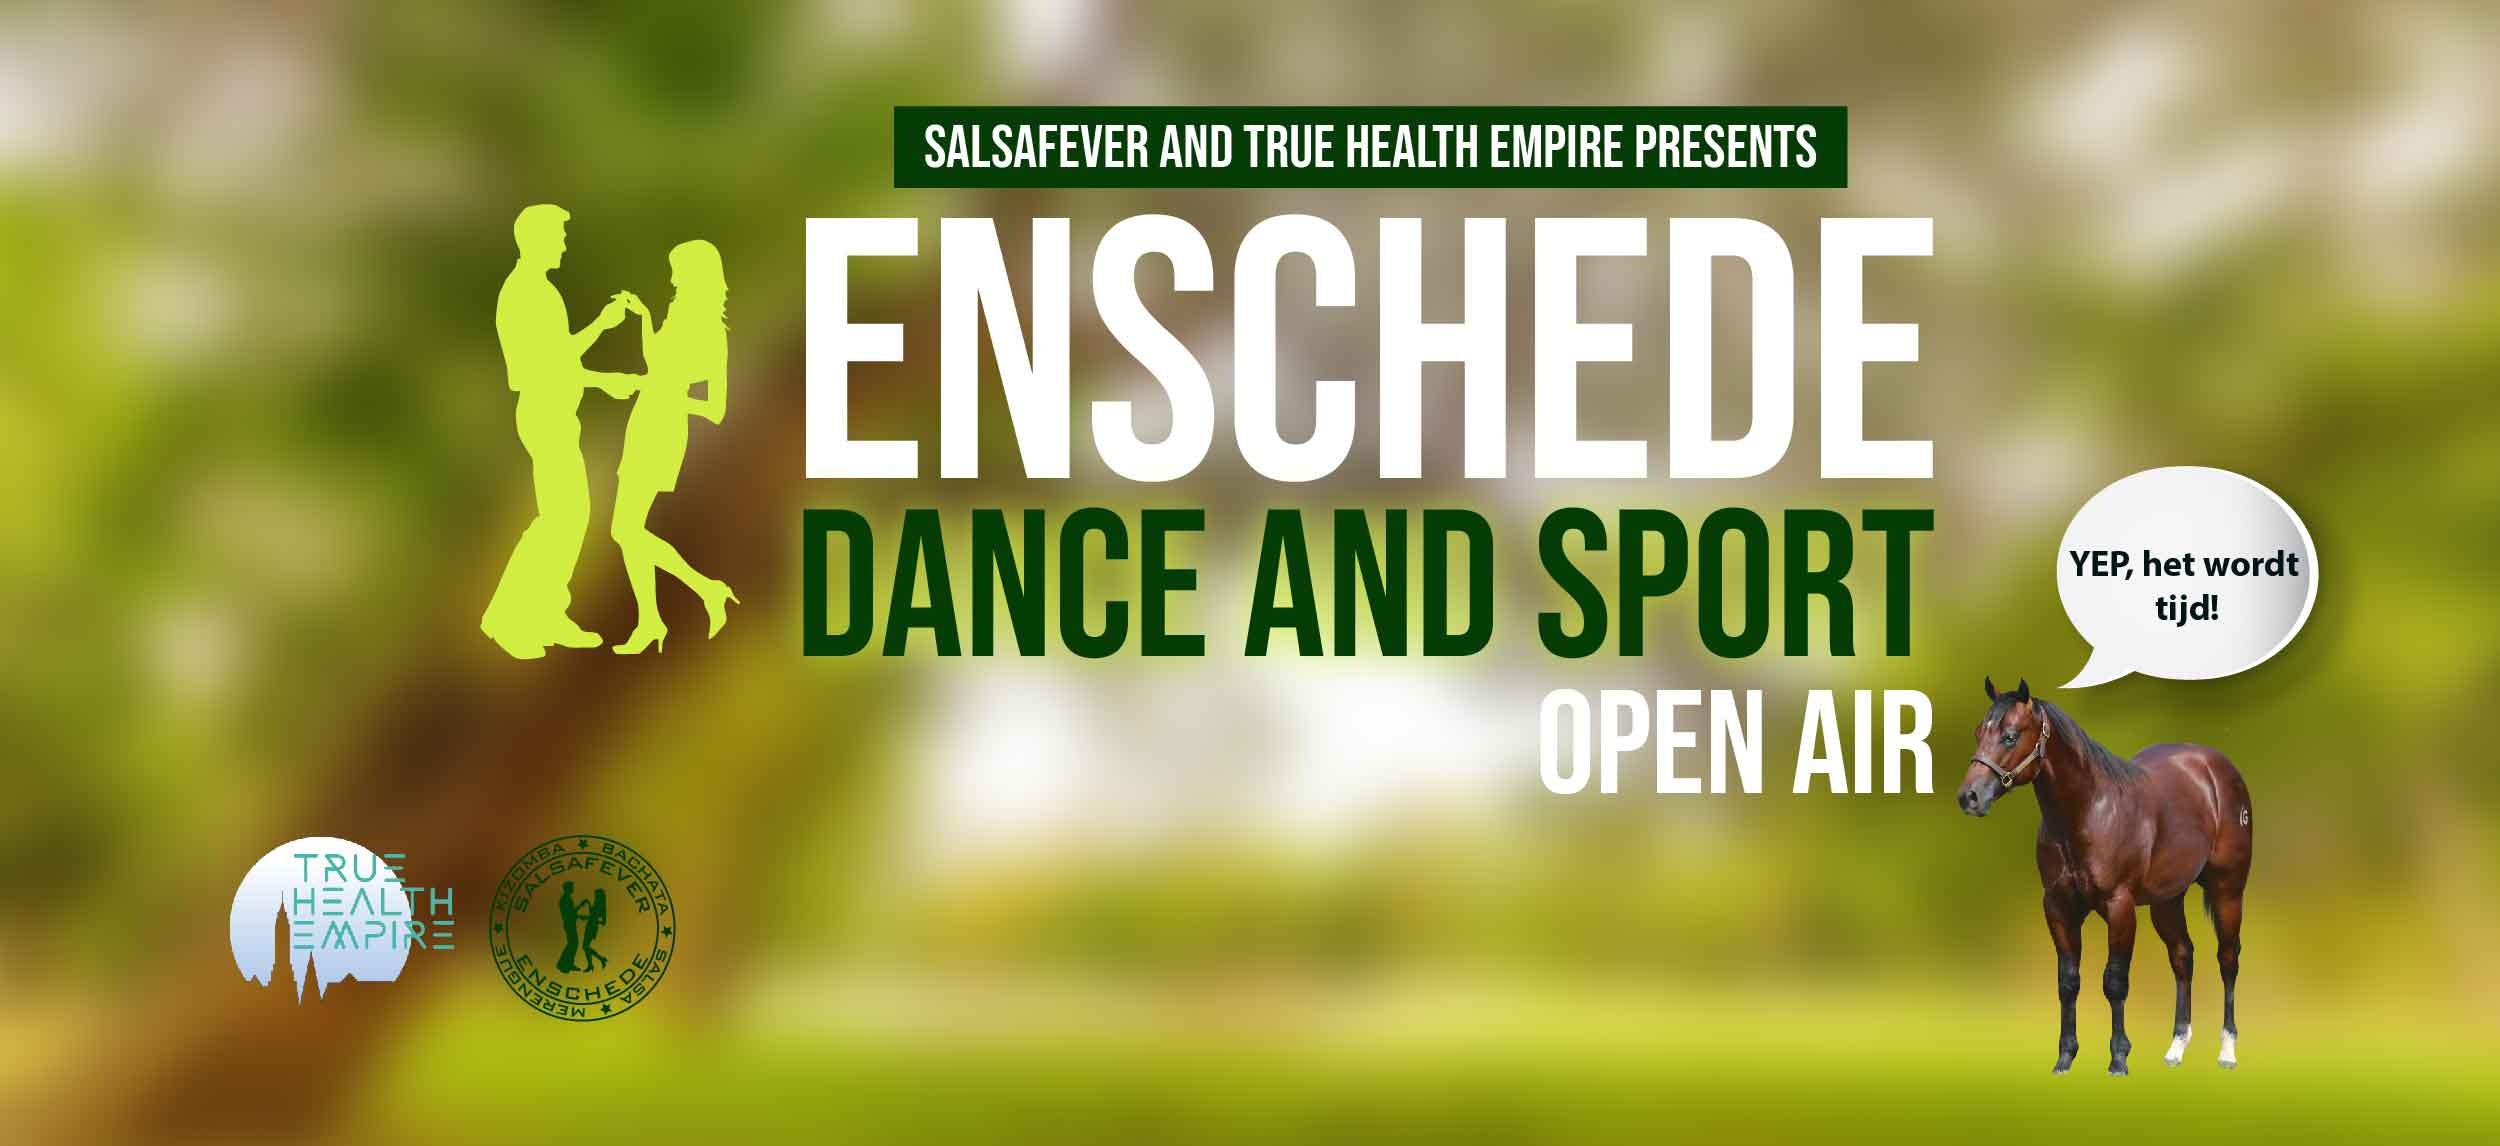 Enschede dance and sport open air met salsafever web official-01